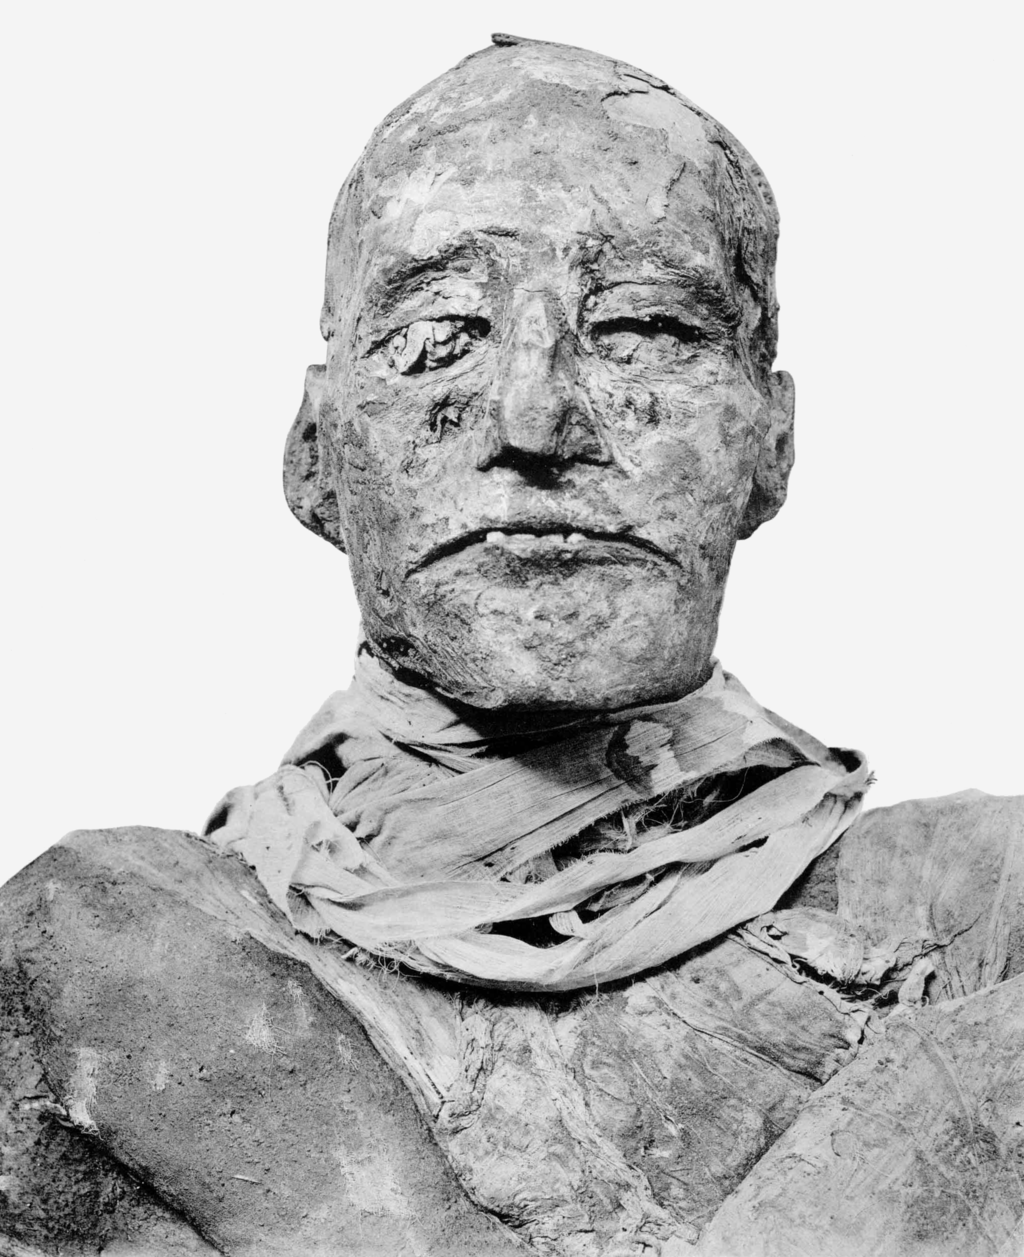 The mummy of Ramesses III. The wrappings hid the fact that the pharaoh's throat was slit when he was assassinated during a massive coup